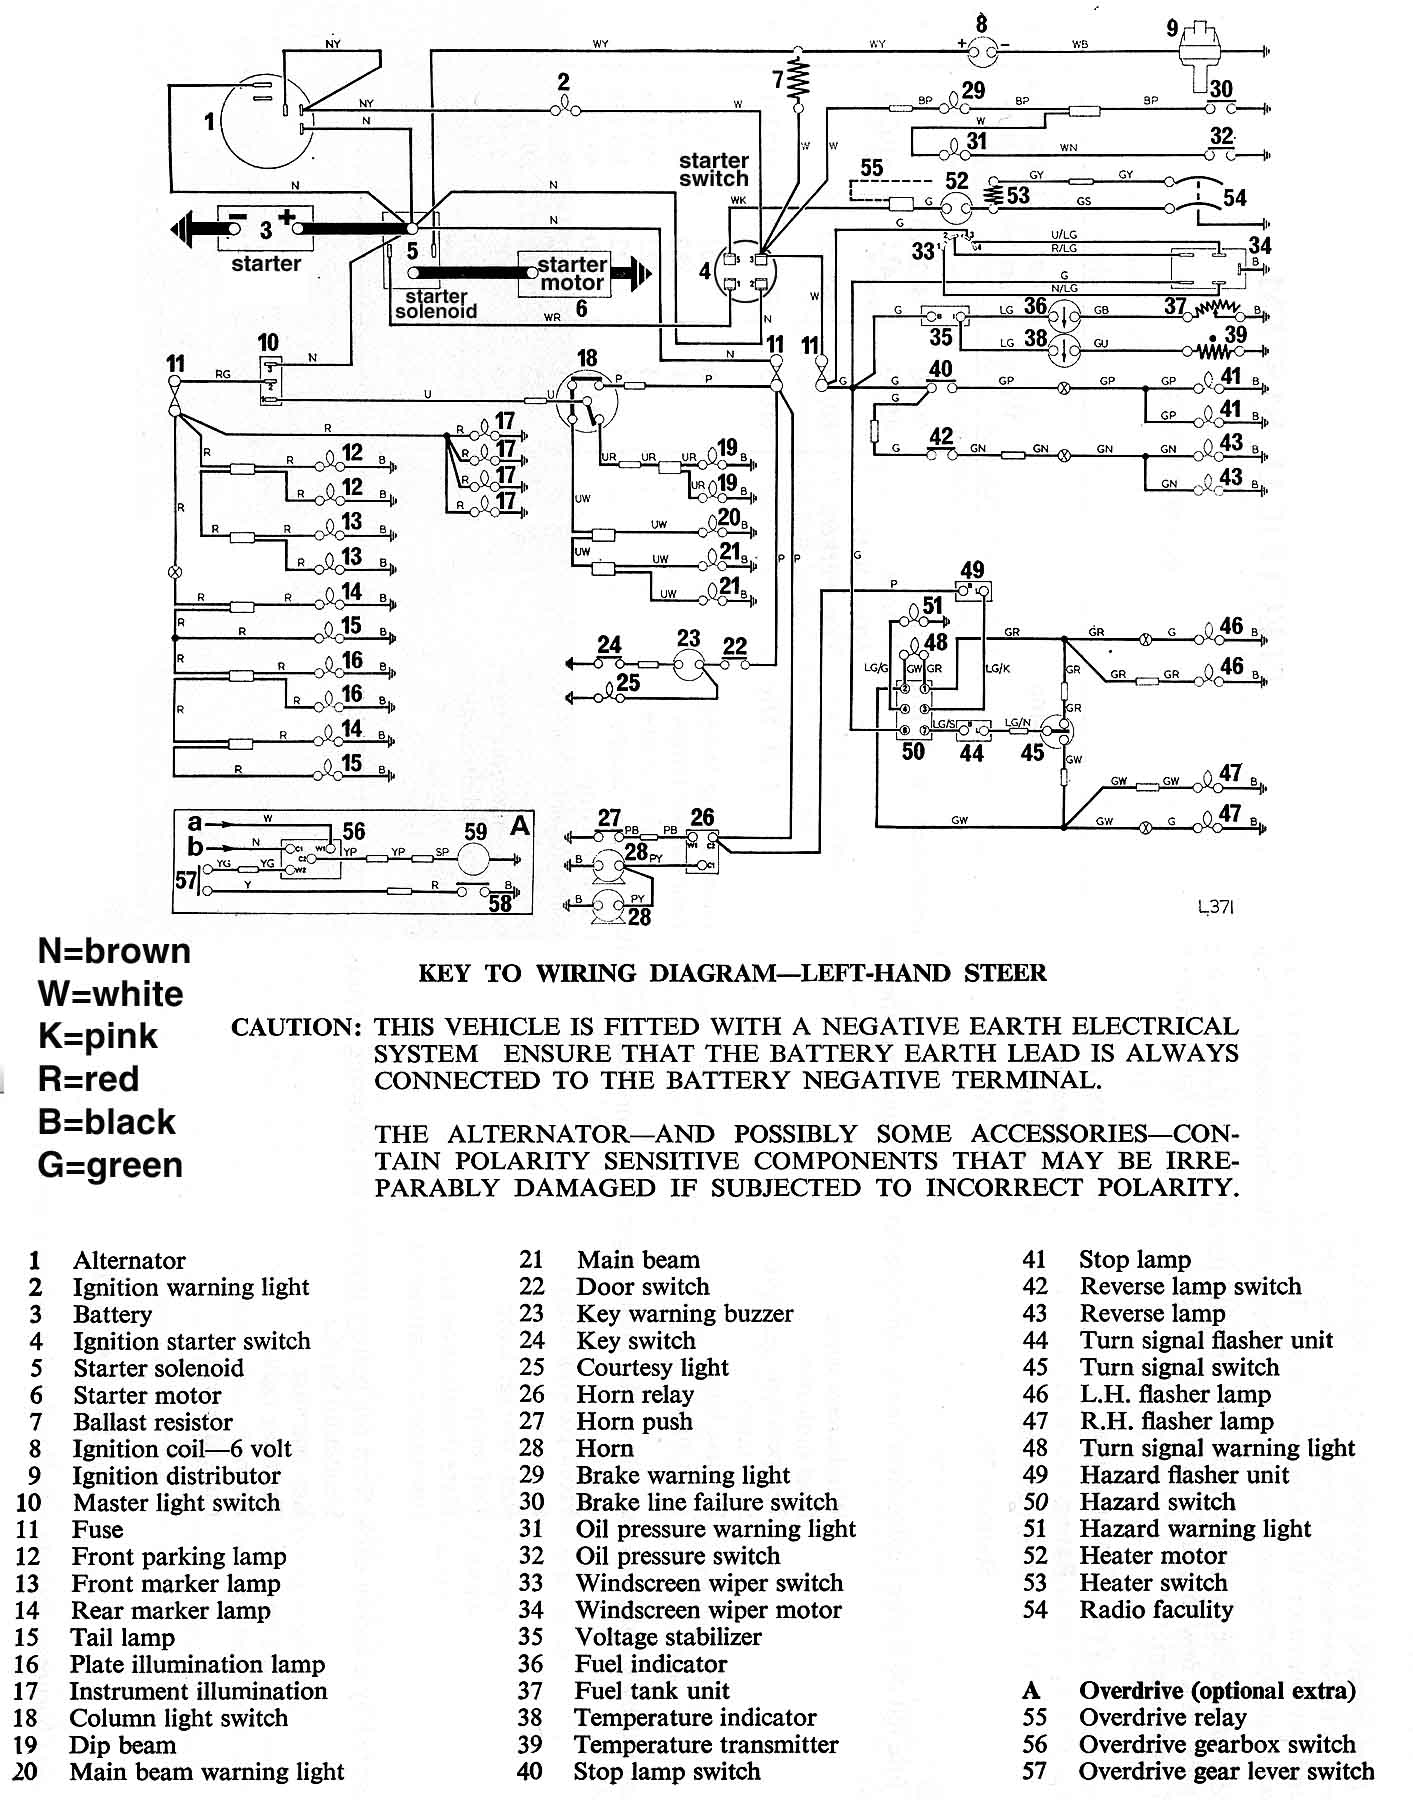 MKIVwire mk4 wiring diagram mk4 tdi wiring diagram \u2022 wiring diagrams j  at eliteediting.co